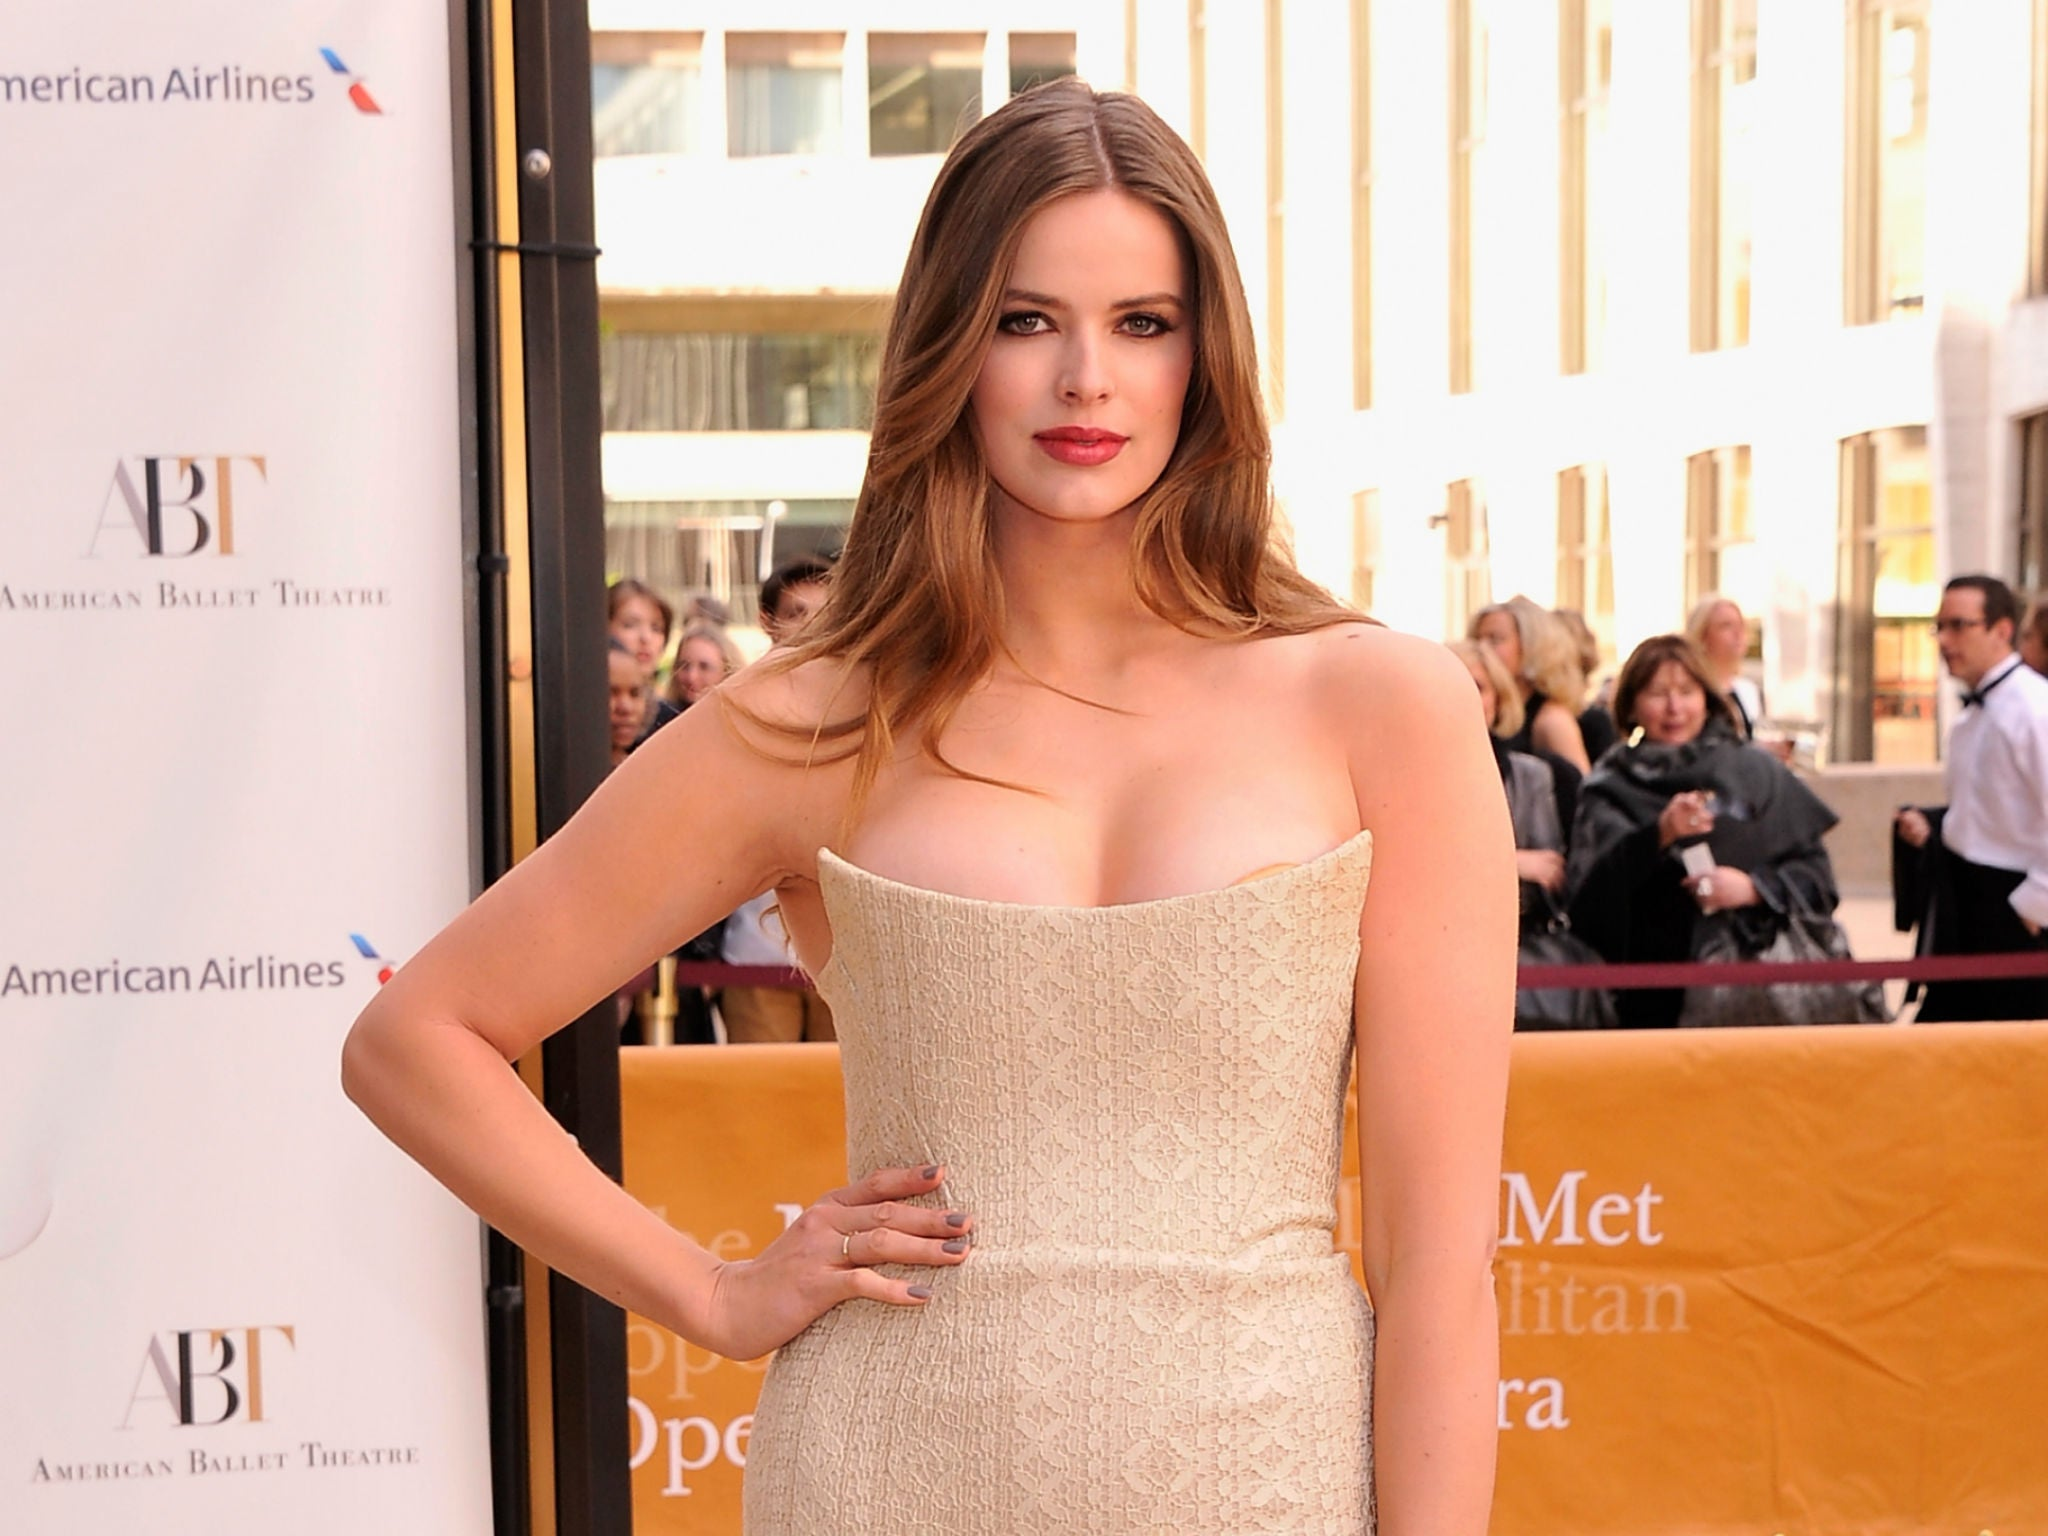 Robyn Lawley nudes (33 pics) Gallery, iCloud, swimsuit